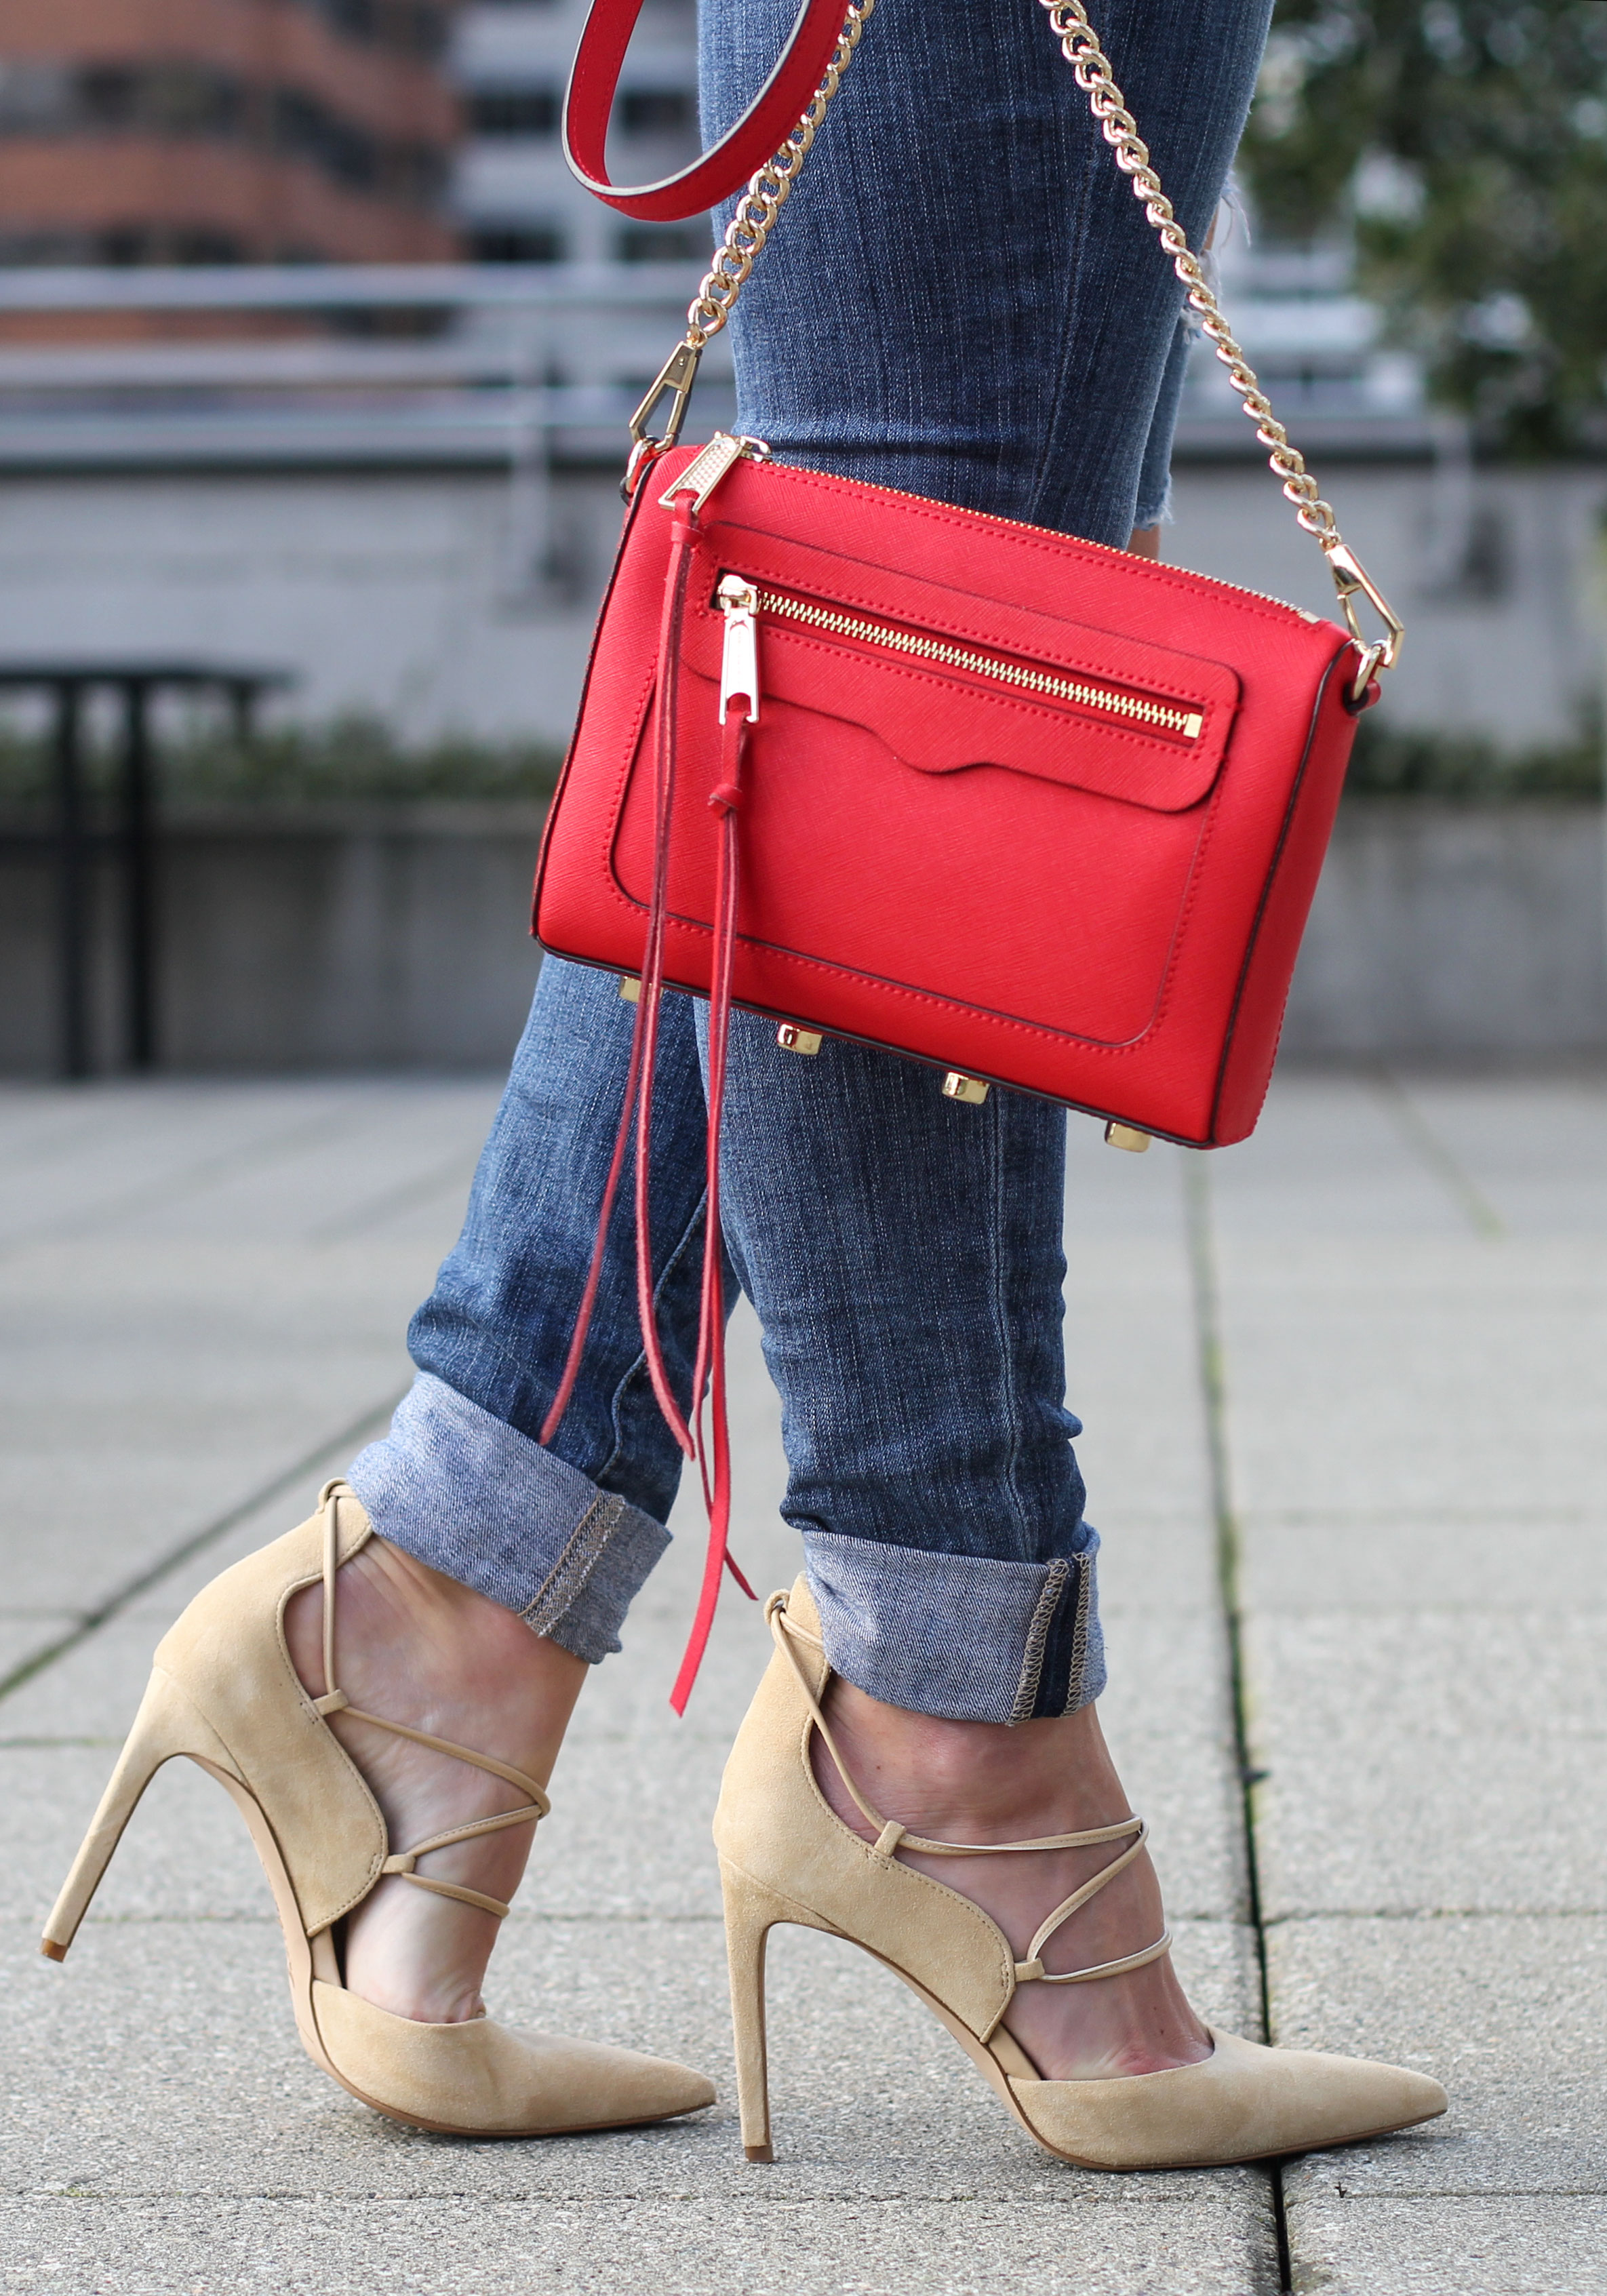 Destroyed Joe's Jeans, Instantly Tailor Your Denim To Make Them Shorter, Denim Cuffed, Red Rebecca Minkoff Avery Crossbody